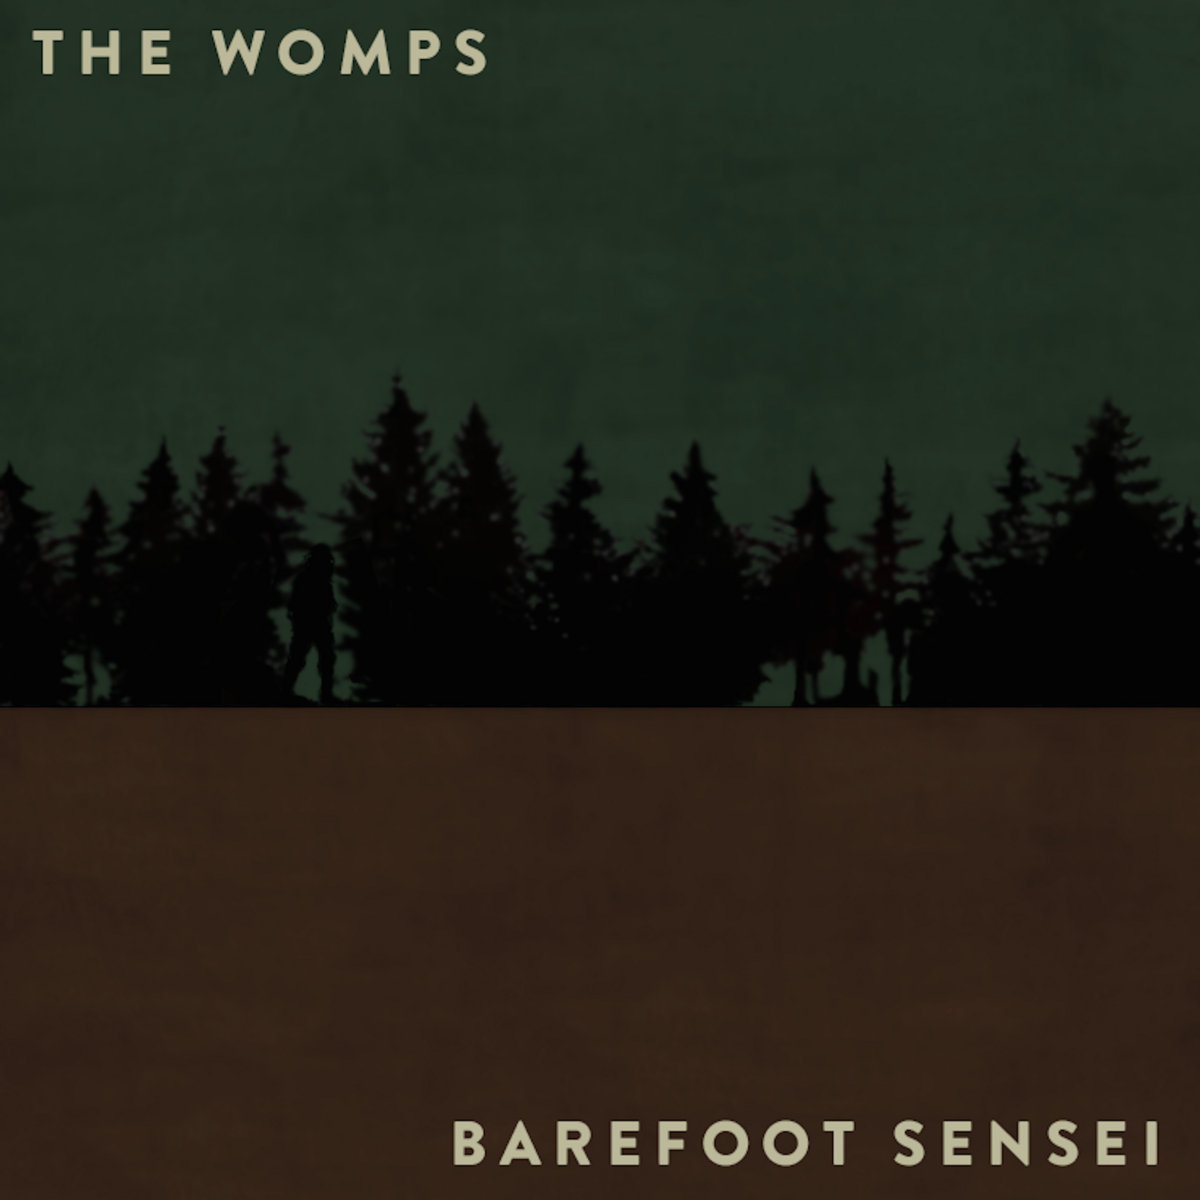 Barefoot Sensei by The Womps